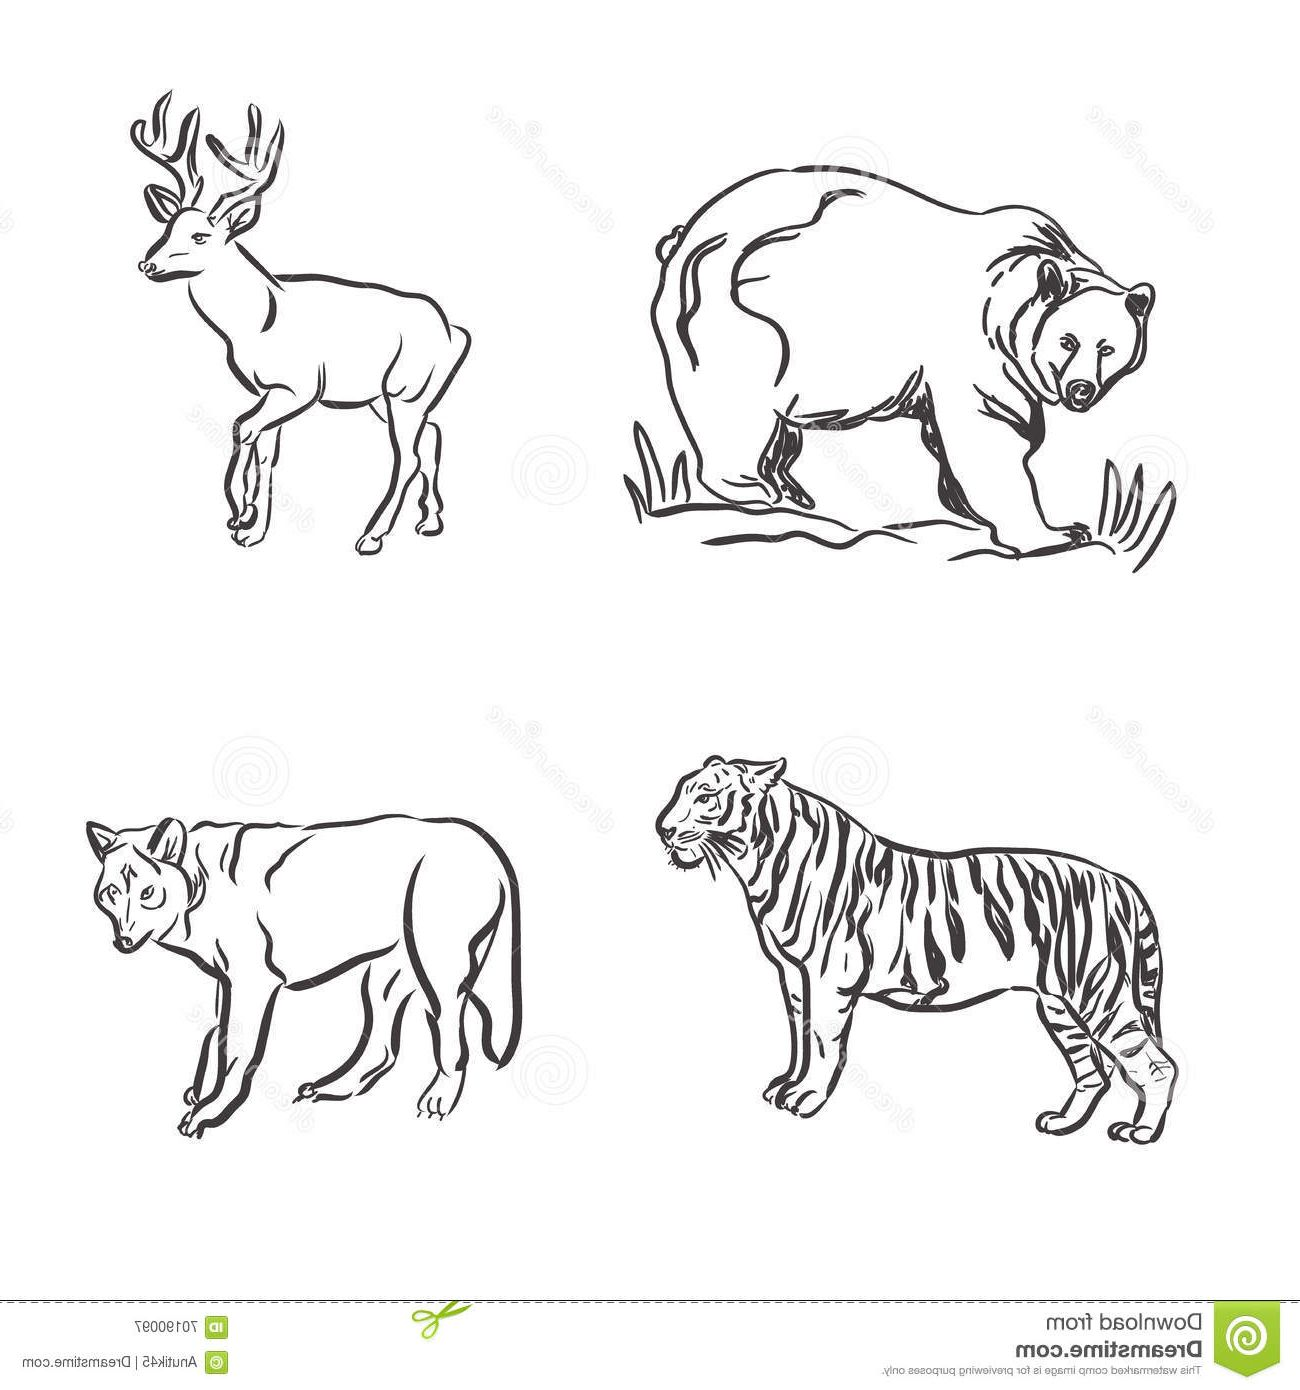 Wild animals draw yahoo canada image search results